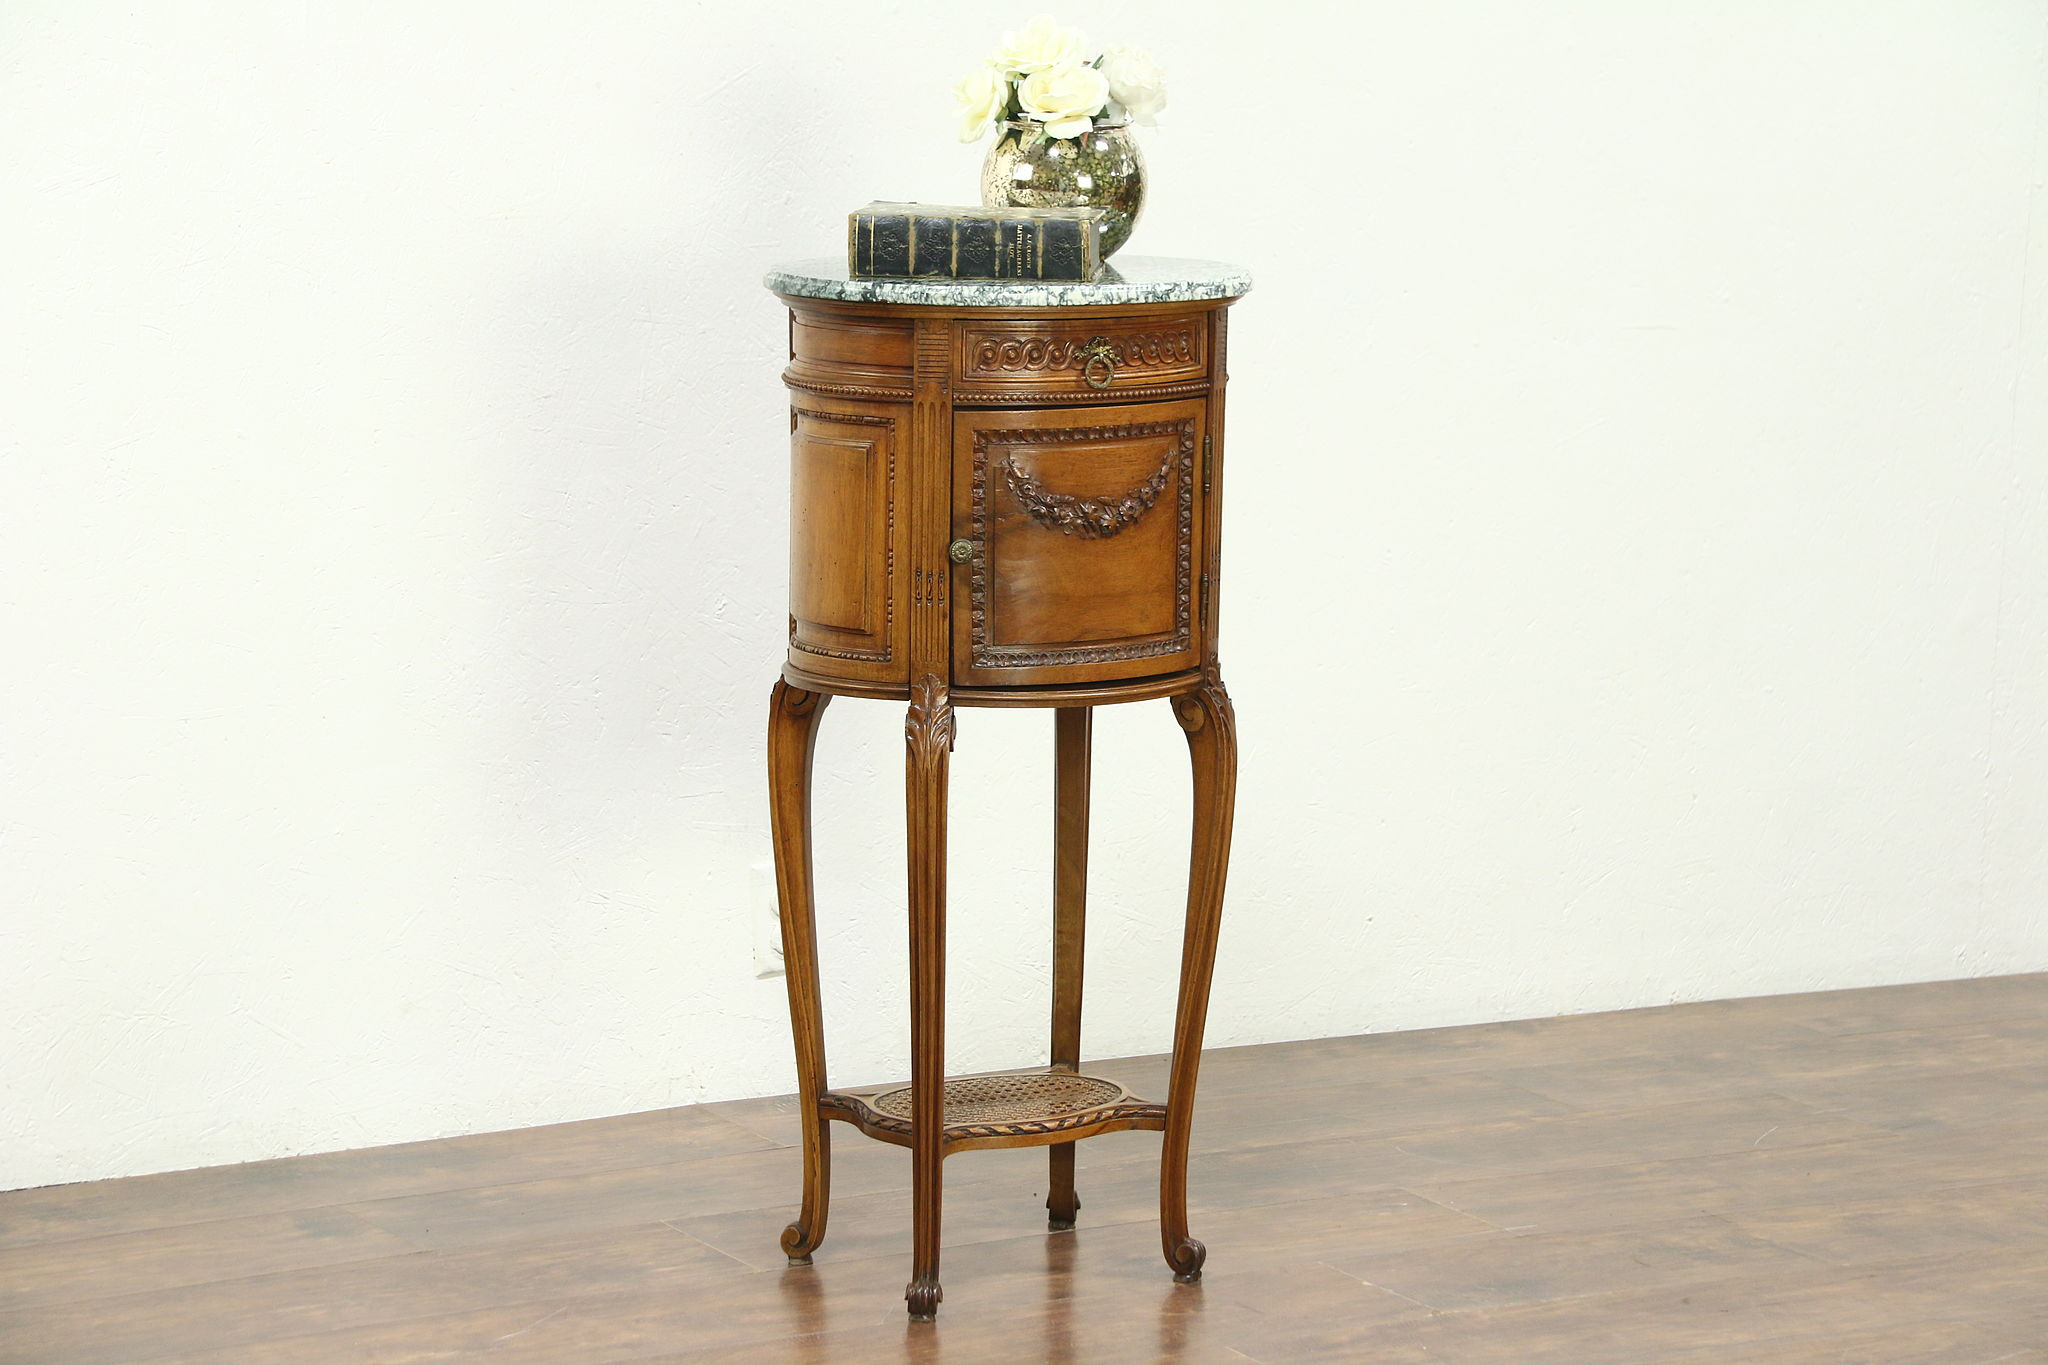 Oval Carved Antique Bedside Commode, Table Or Nightstand, Marble Top,  France Photo